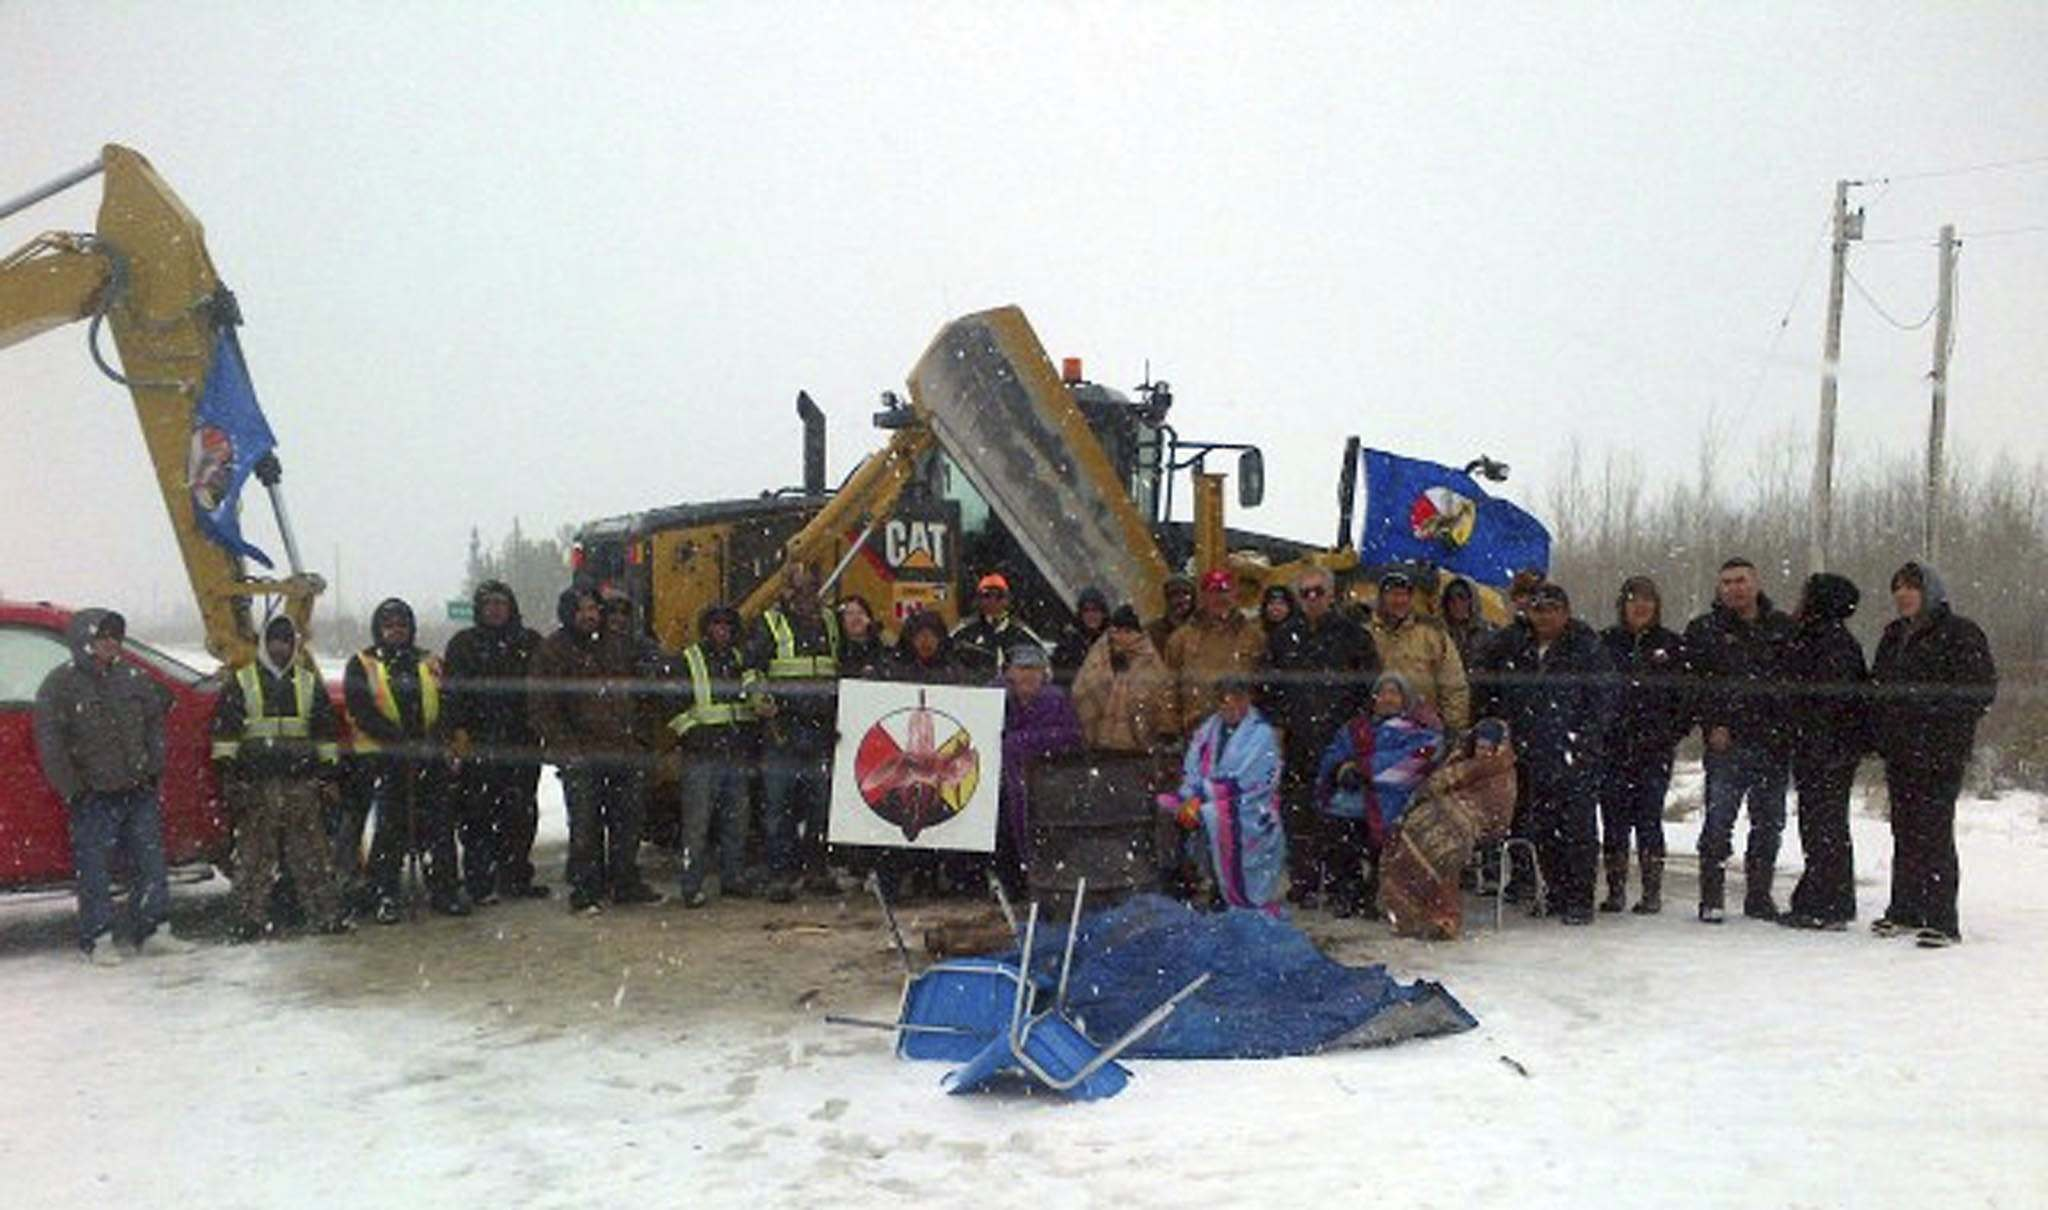 CLARA MCLEOD PHOTO</p><p>The blockade by Fox Lake Cree Nation began after members of the band discovered ceremonial land, adorned with prayer flags and tobacco ties, was destroyed.</p>